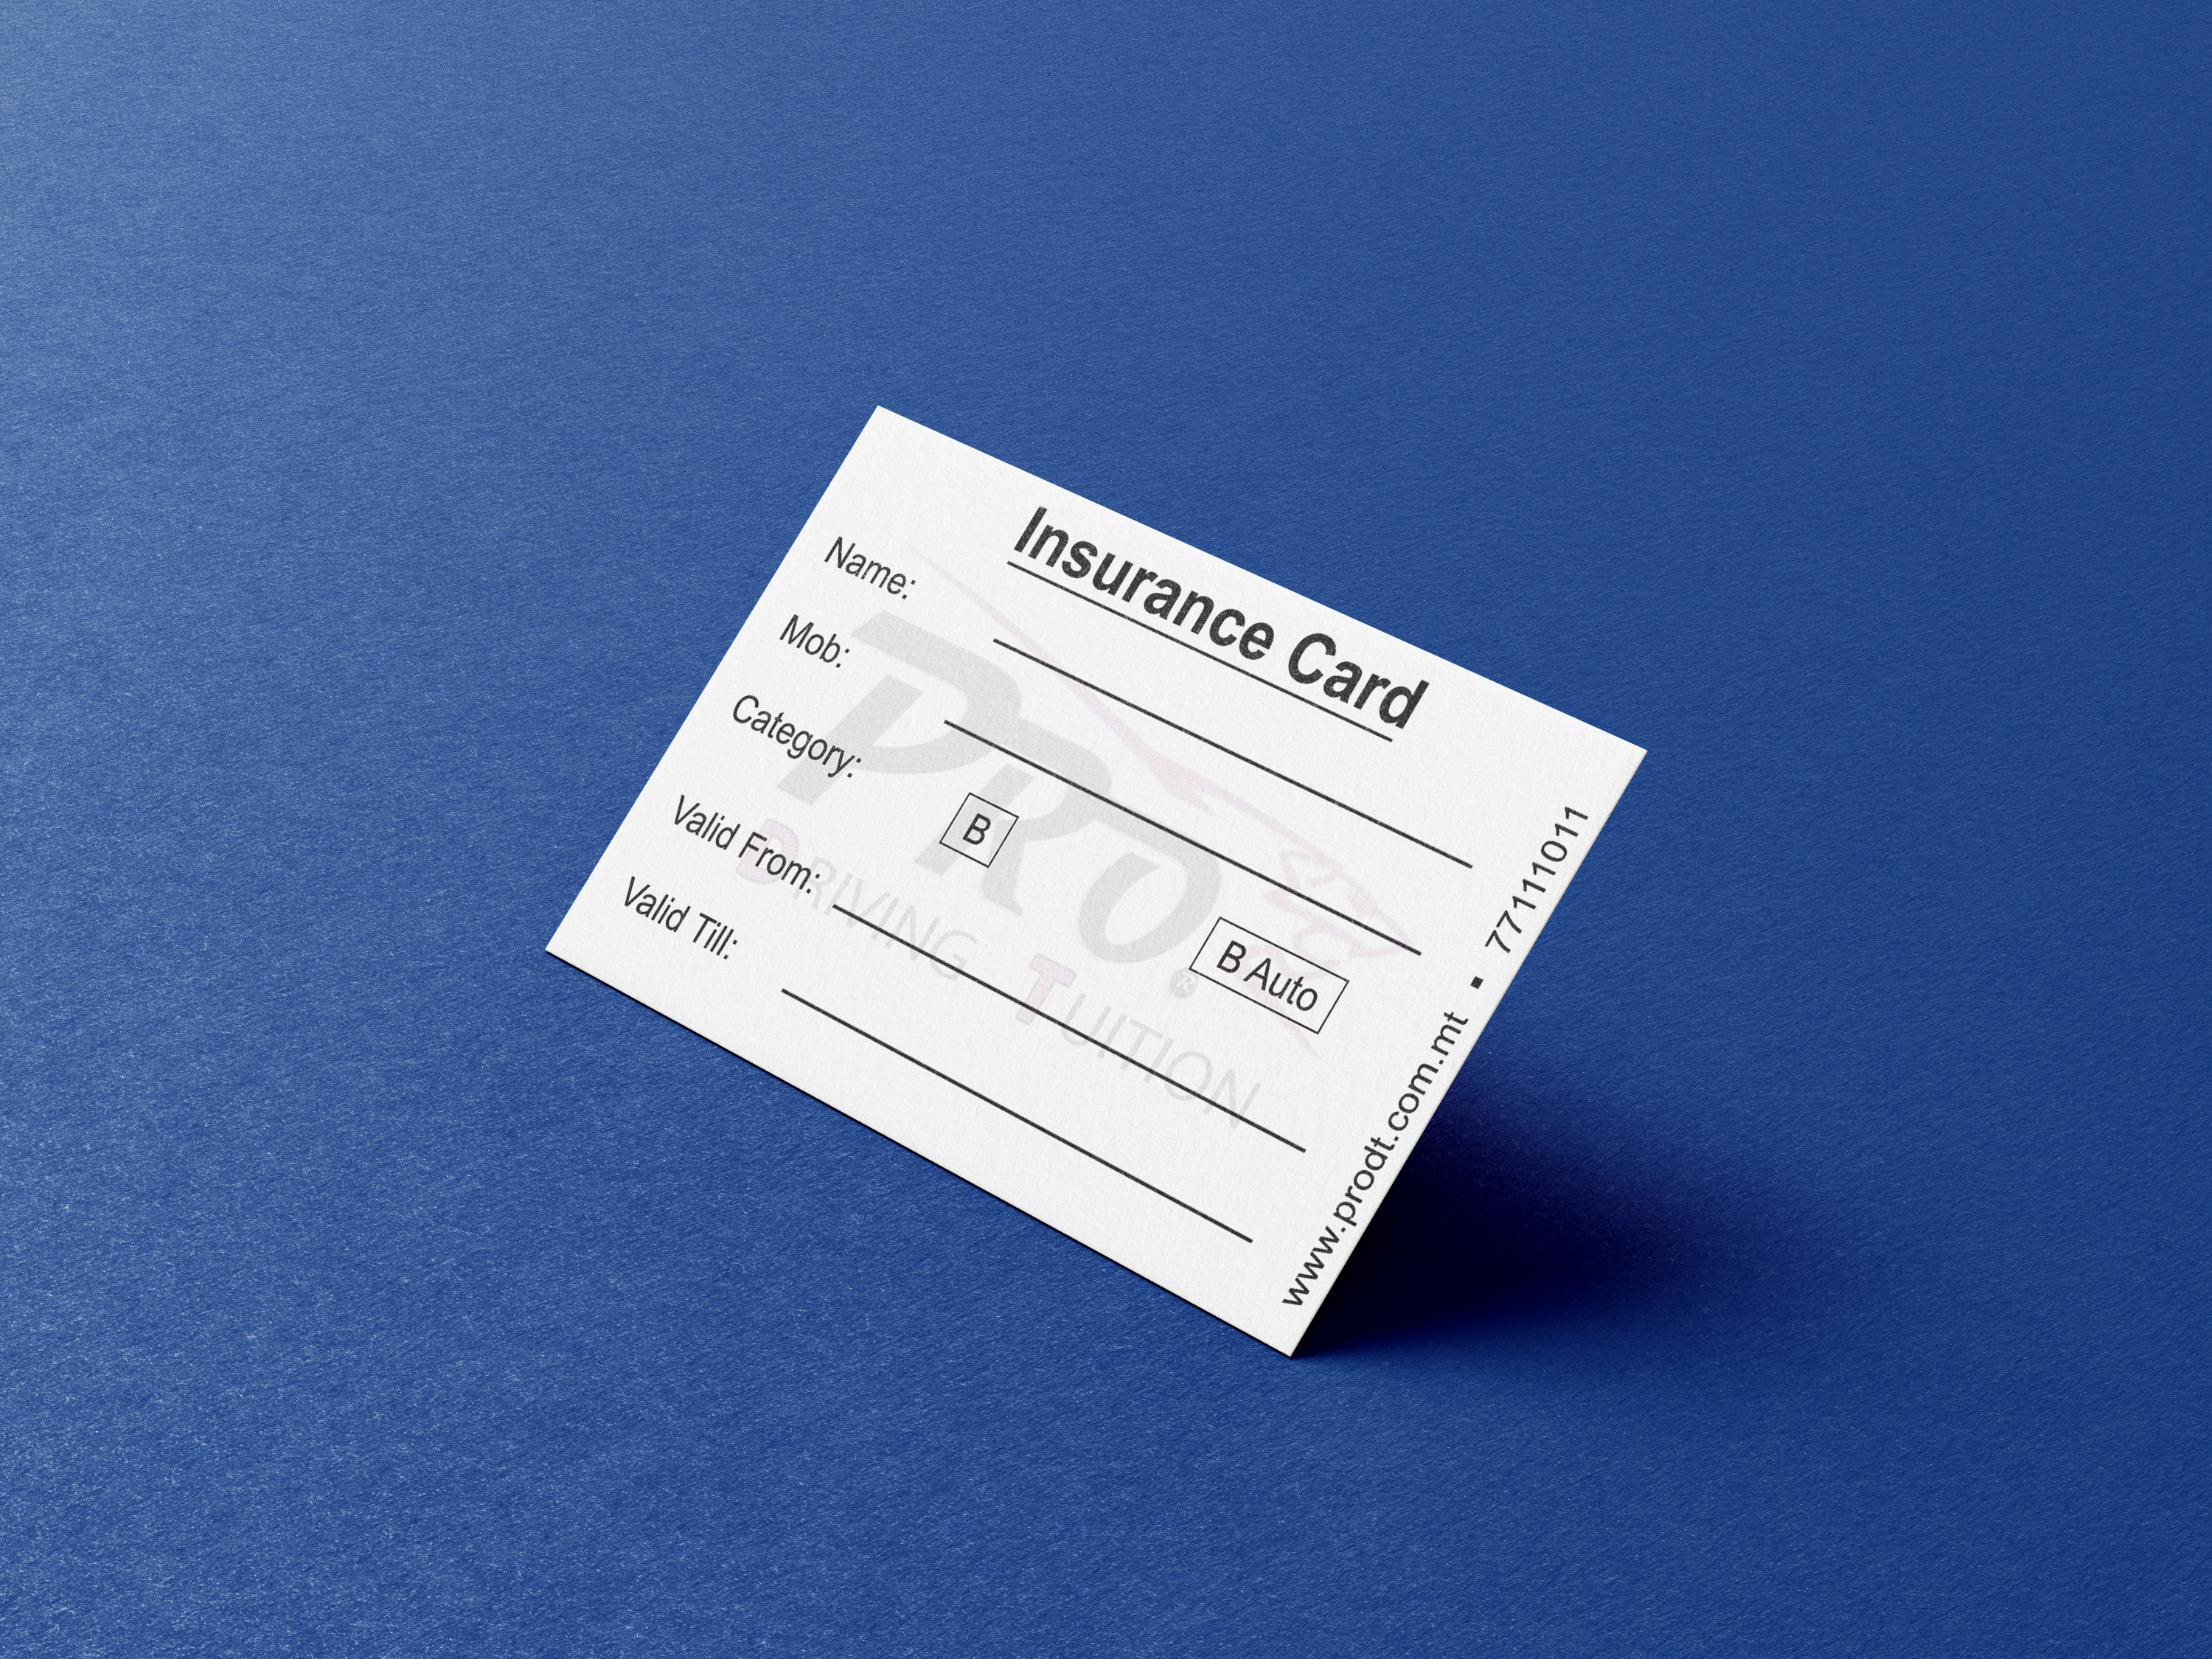 Pro Driving Tuition Insurance Card Display